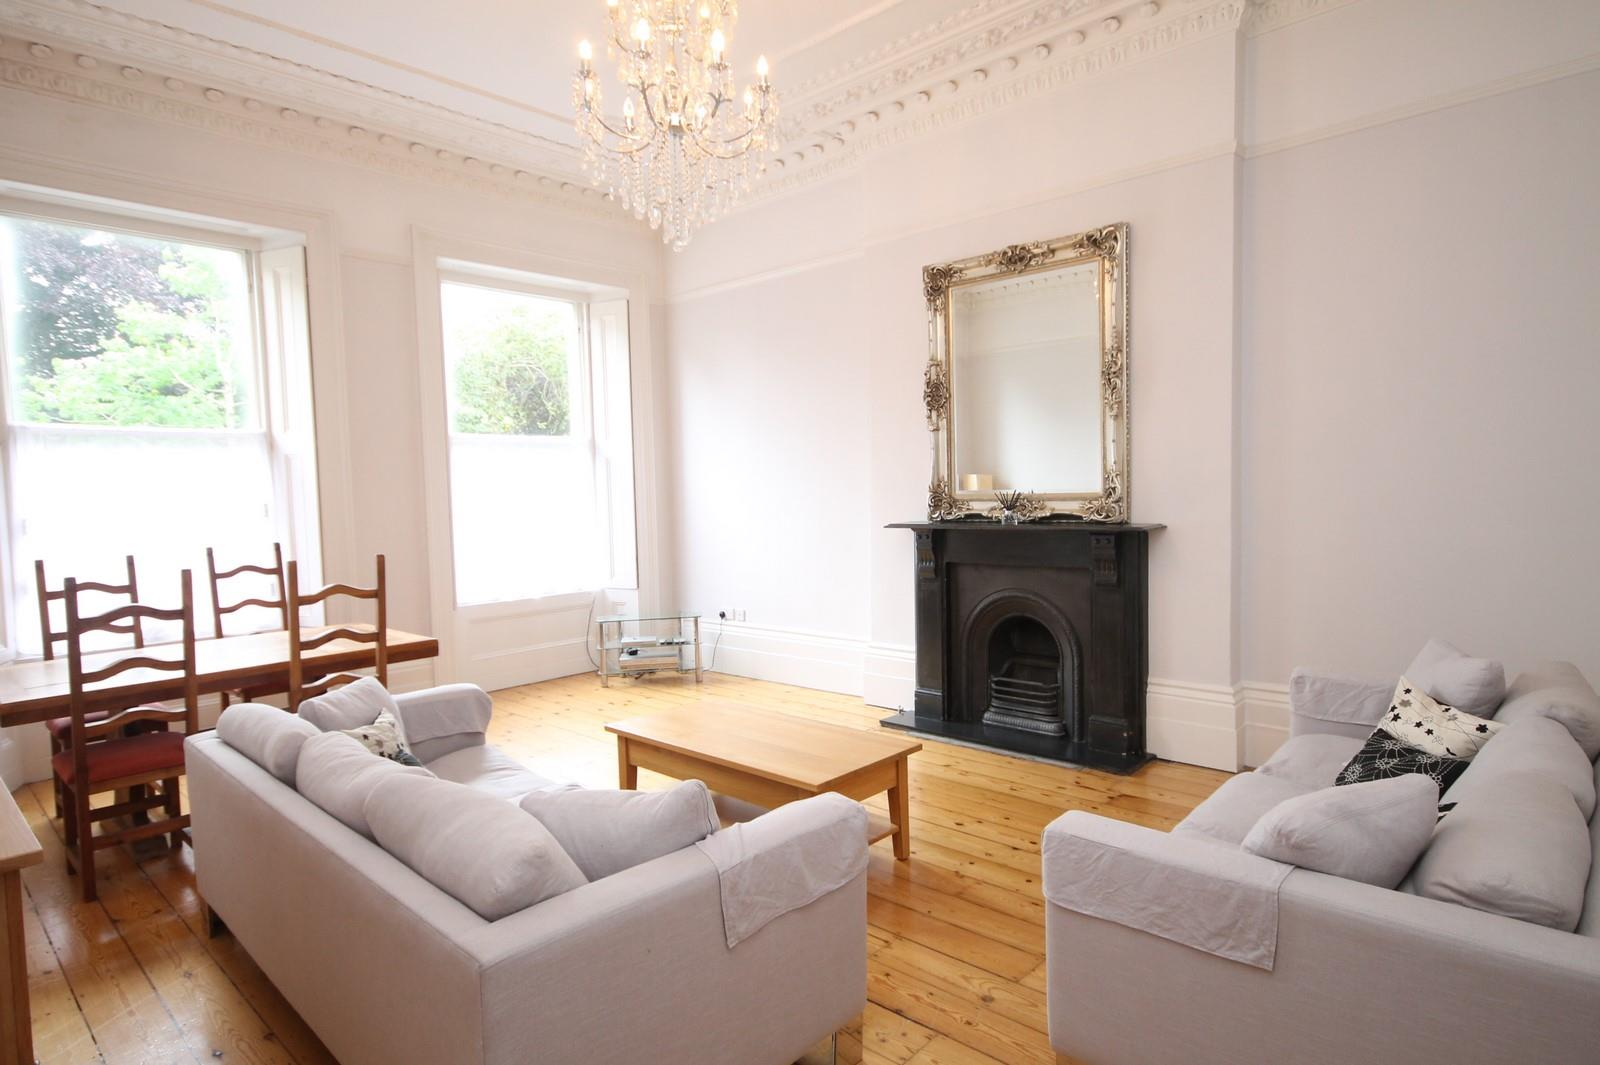 2 bed flat to rent in Victoria Square, Bristol, BS8